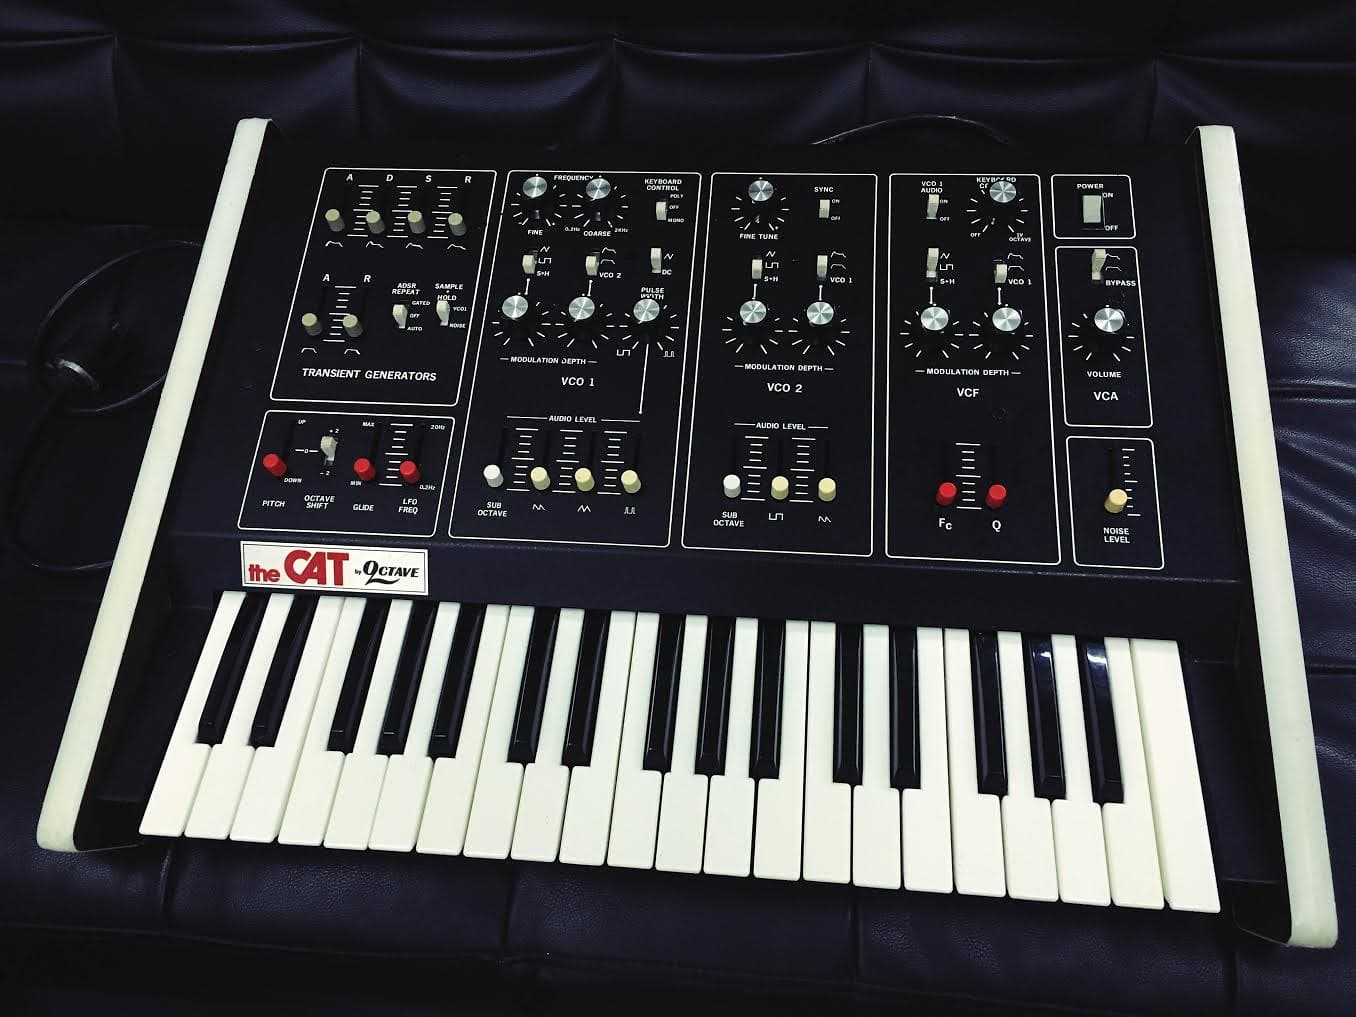 Matrixsynth vintage analog octave plateau the cat srm 1 synthesizer for Yamaha 3 octave keyboard